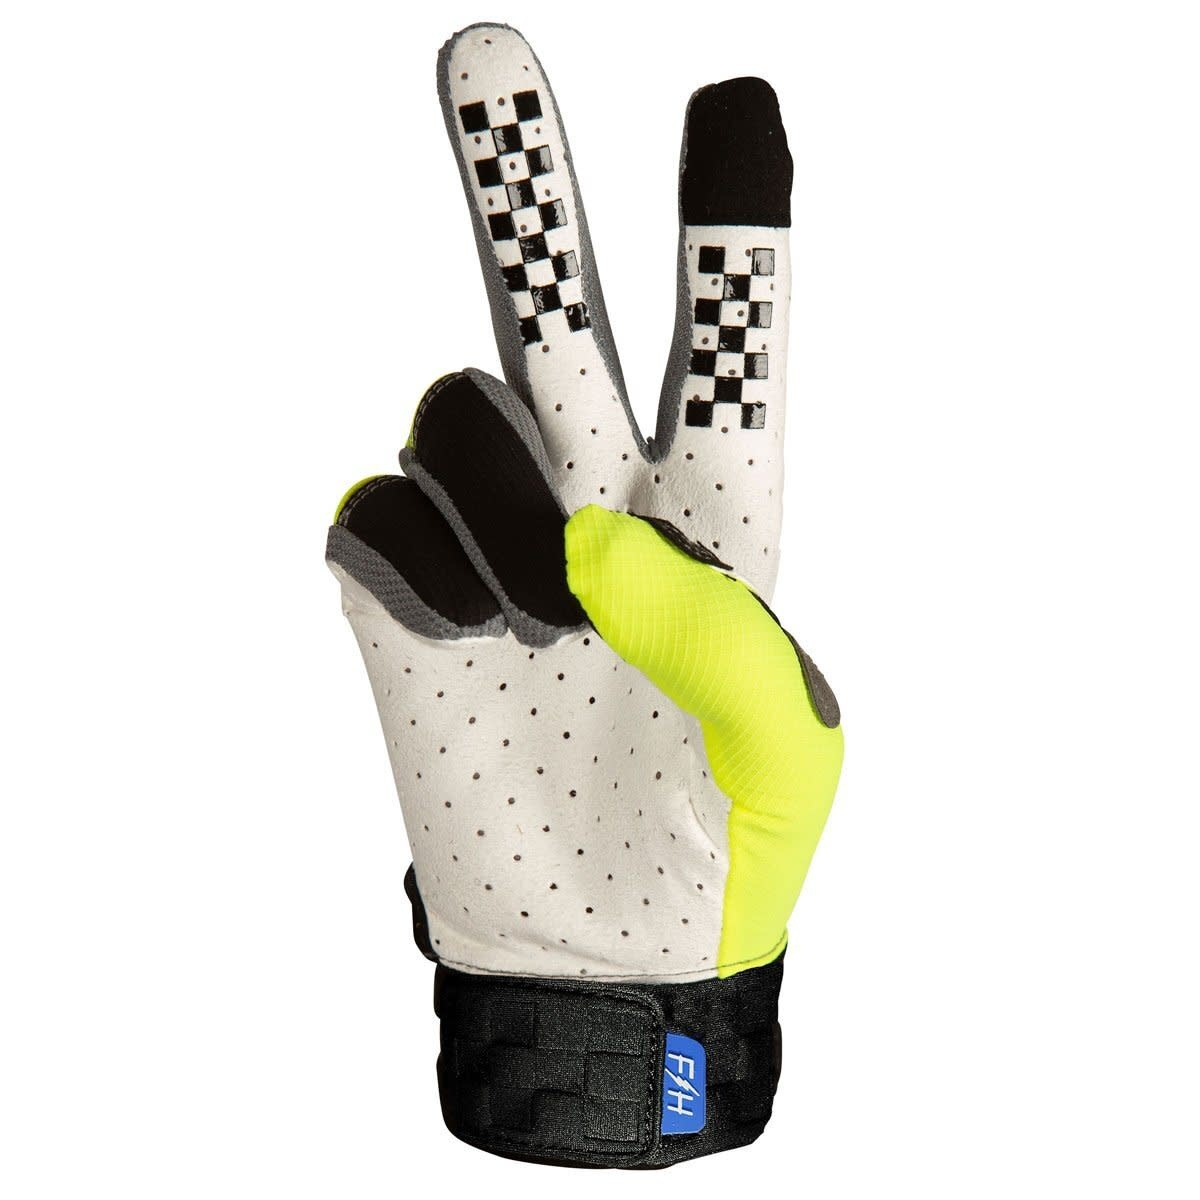 Fasthouse Fasthouse Speed Style Blaster Glove